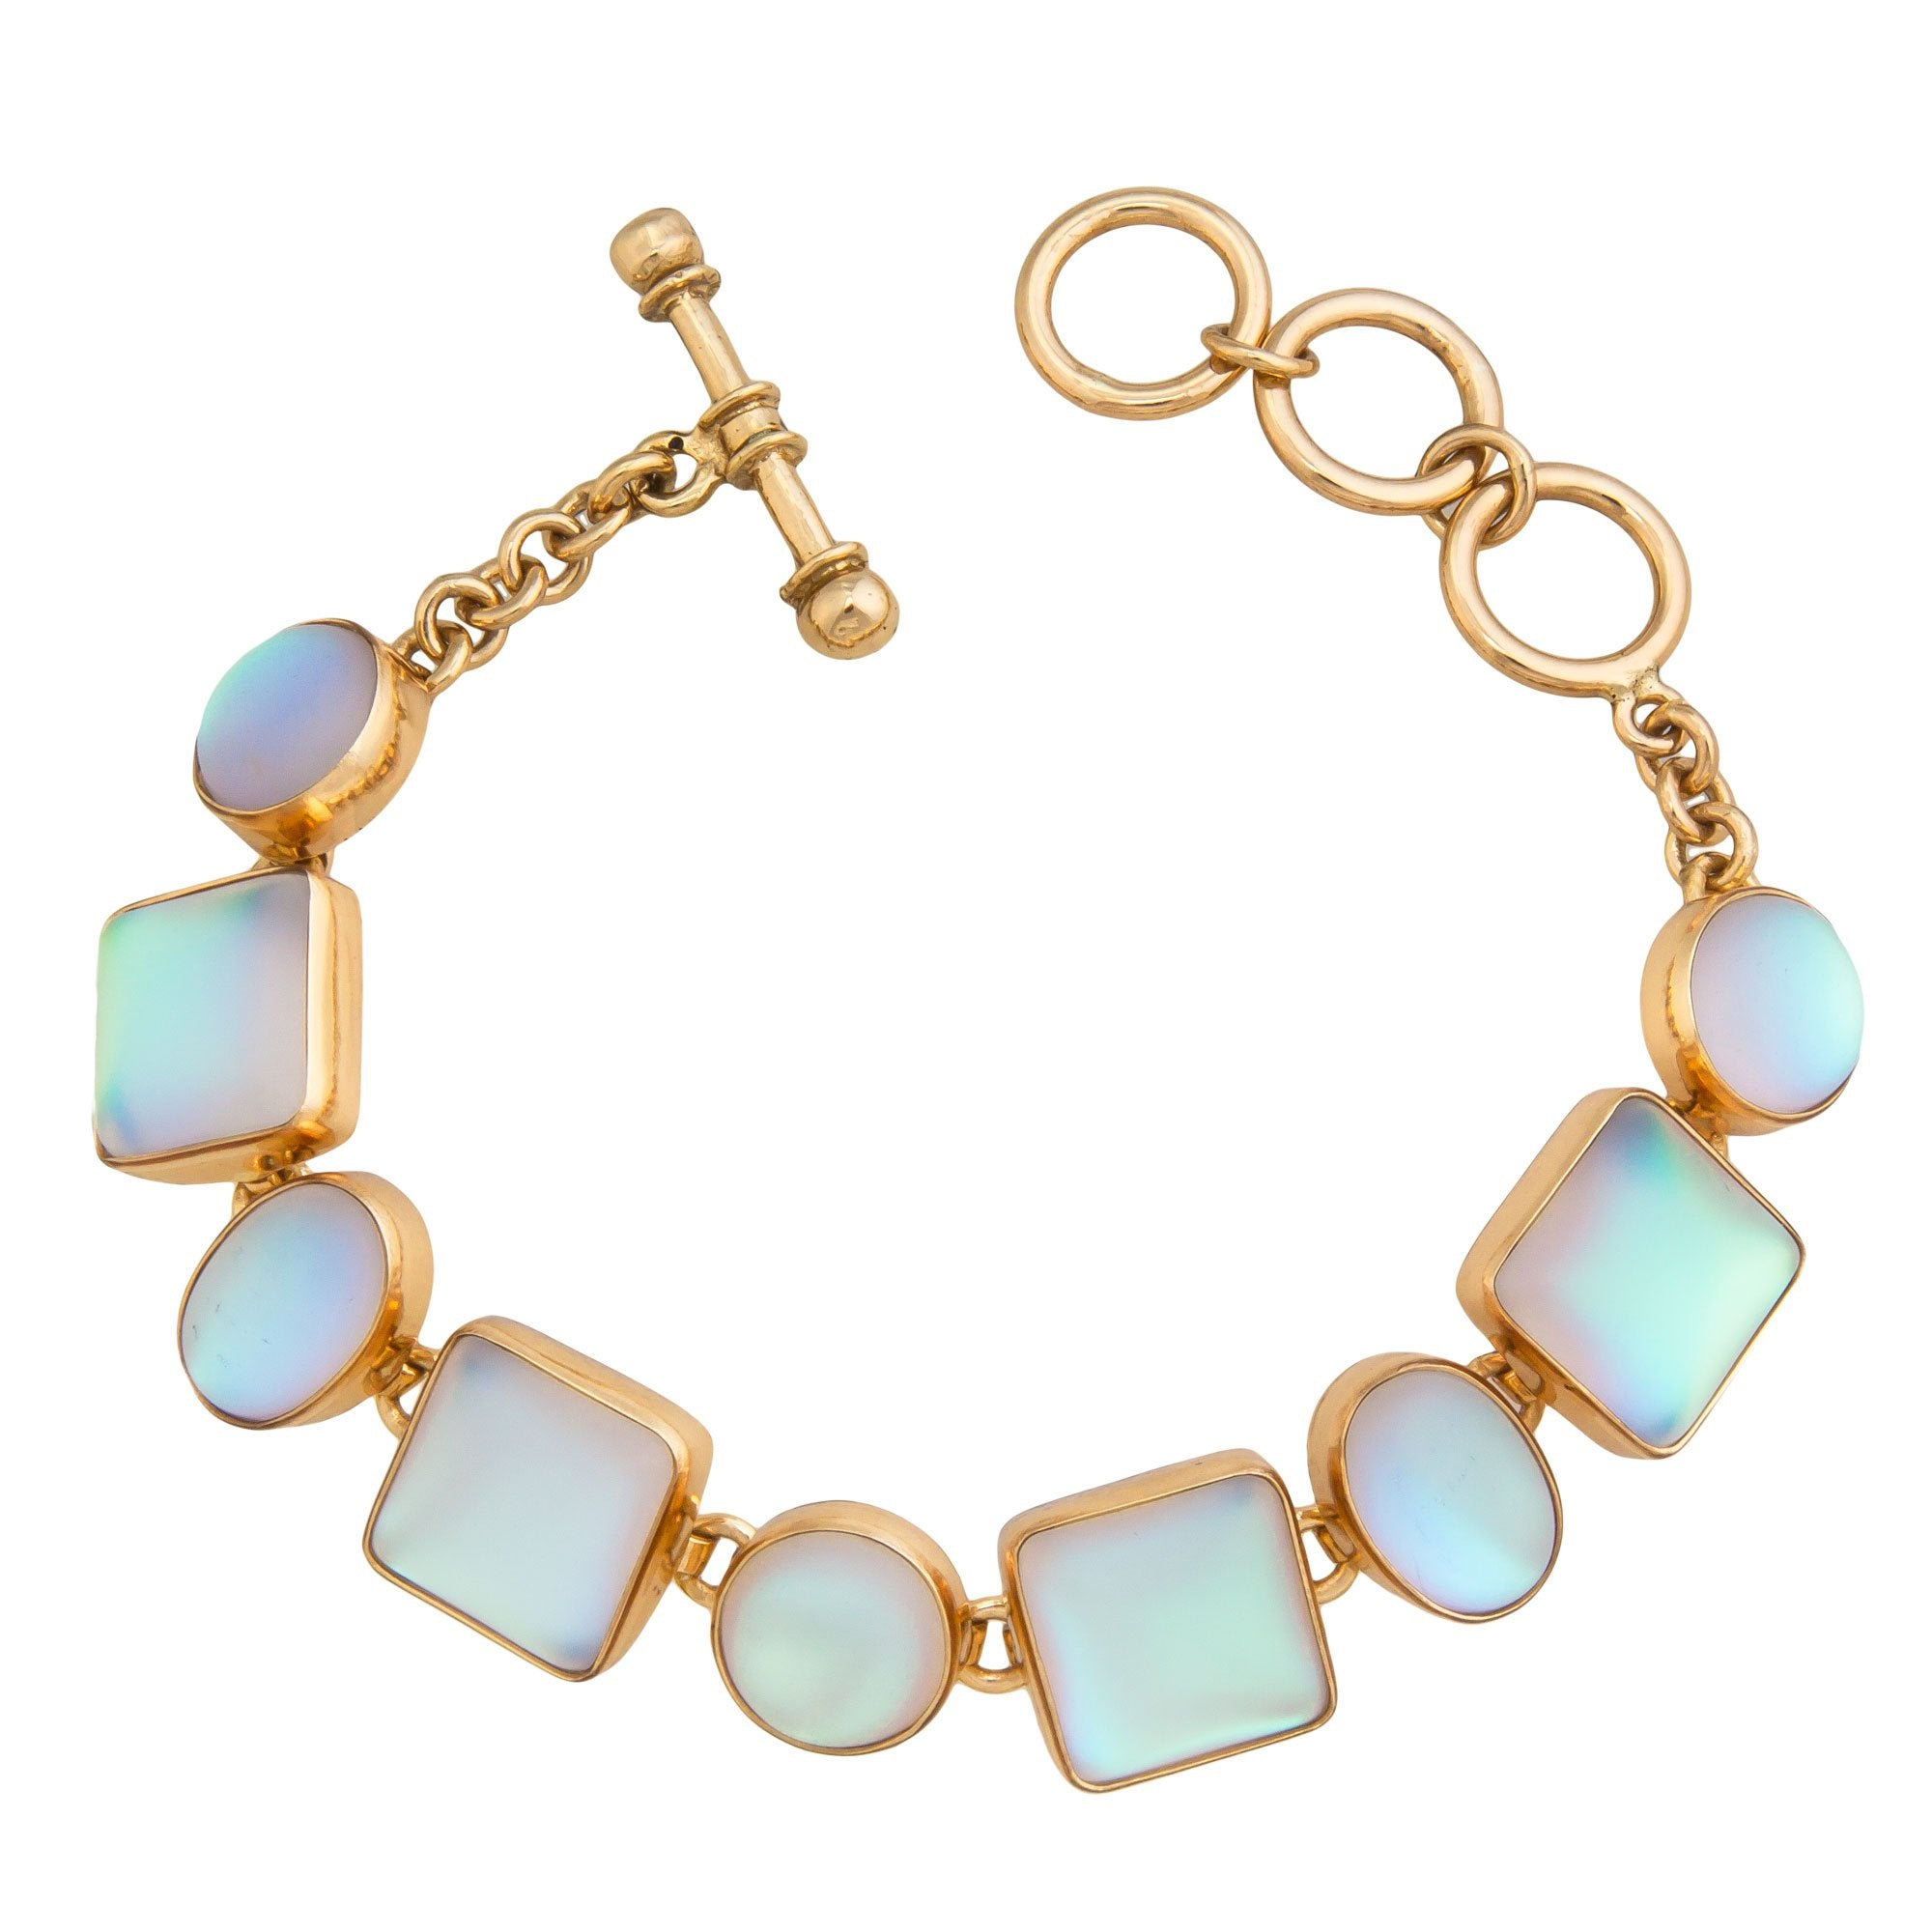 Alchemia Luminite Oval and Square Bracelet